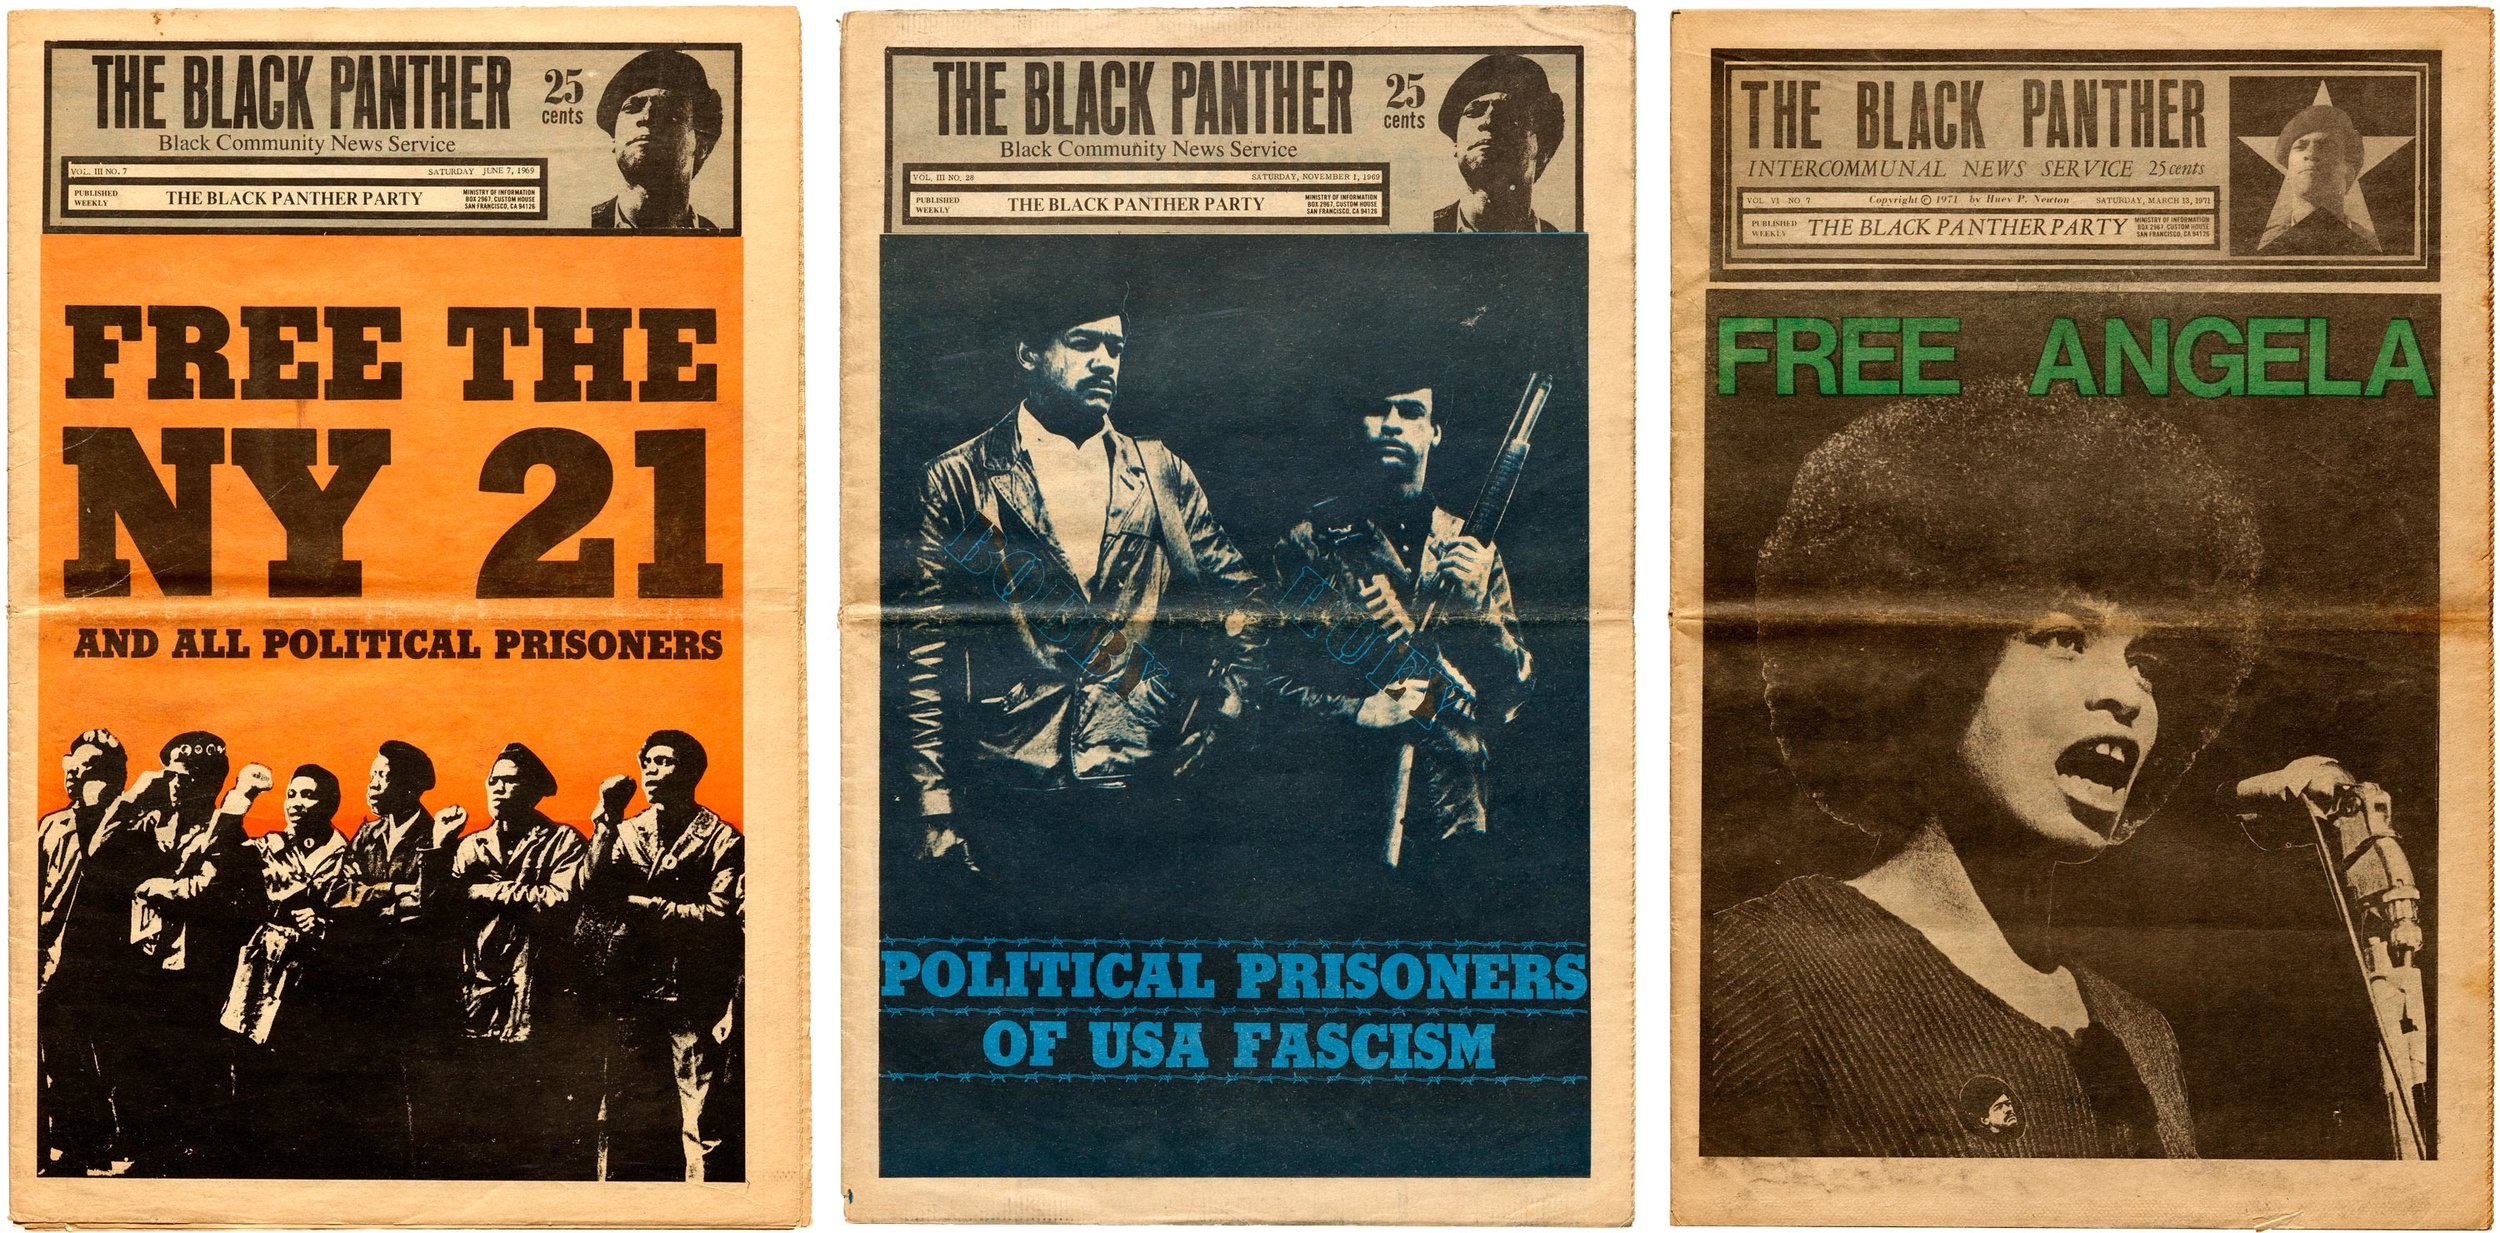 Black-Panther-covers-political-prisoners.jpg